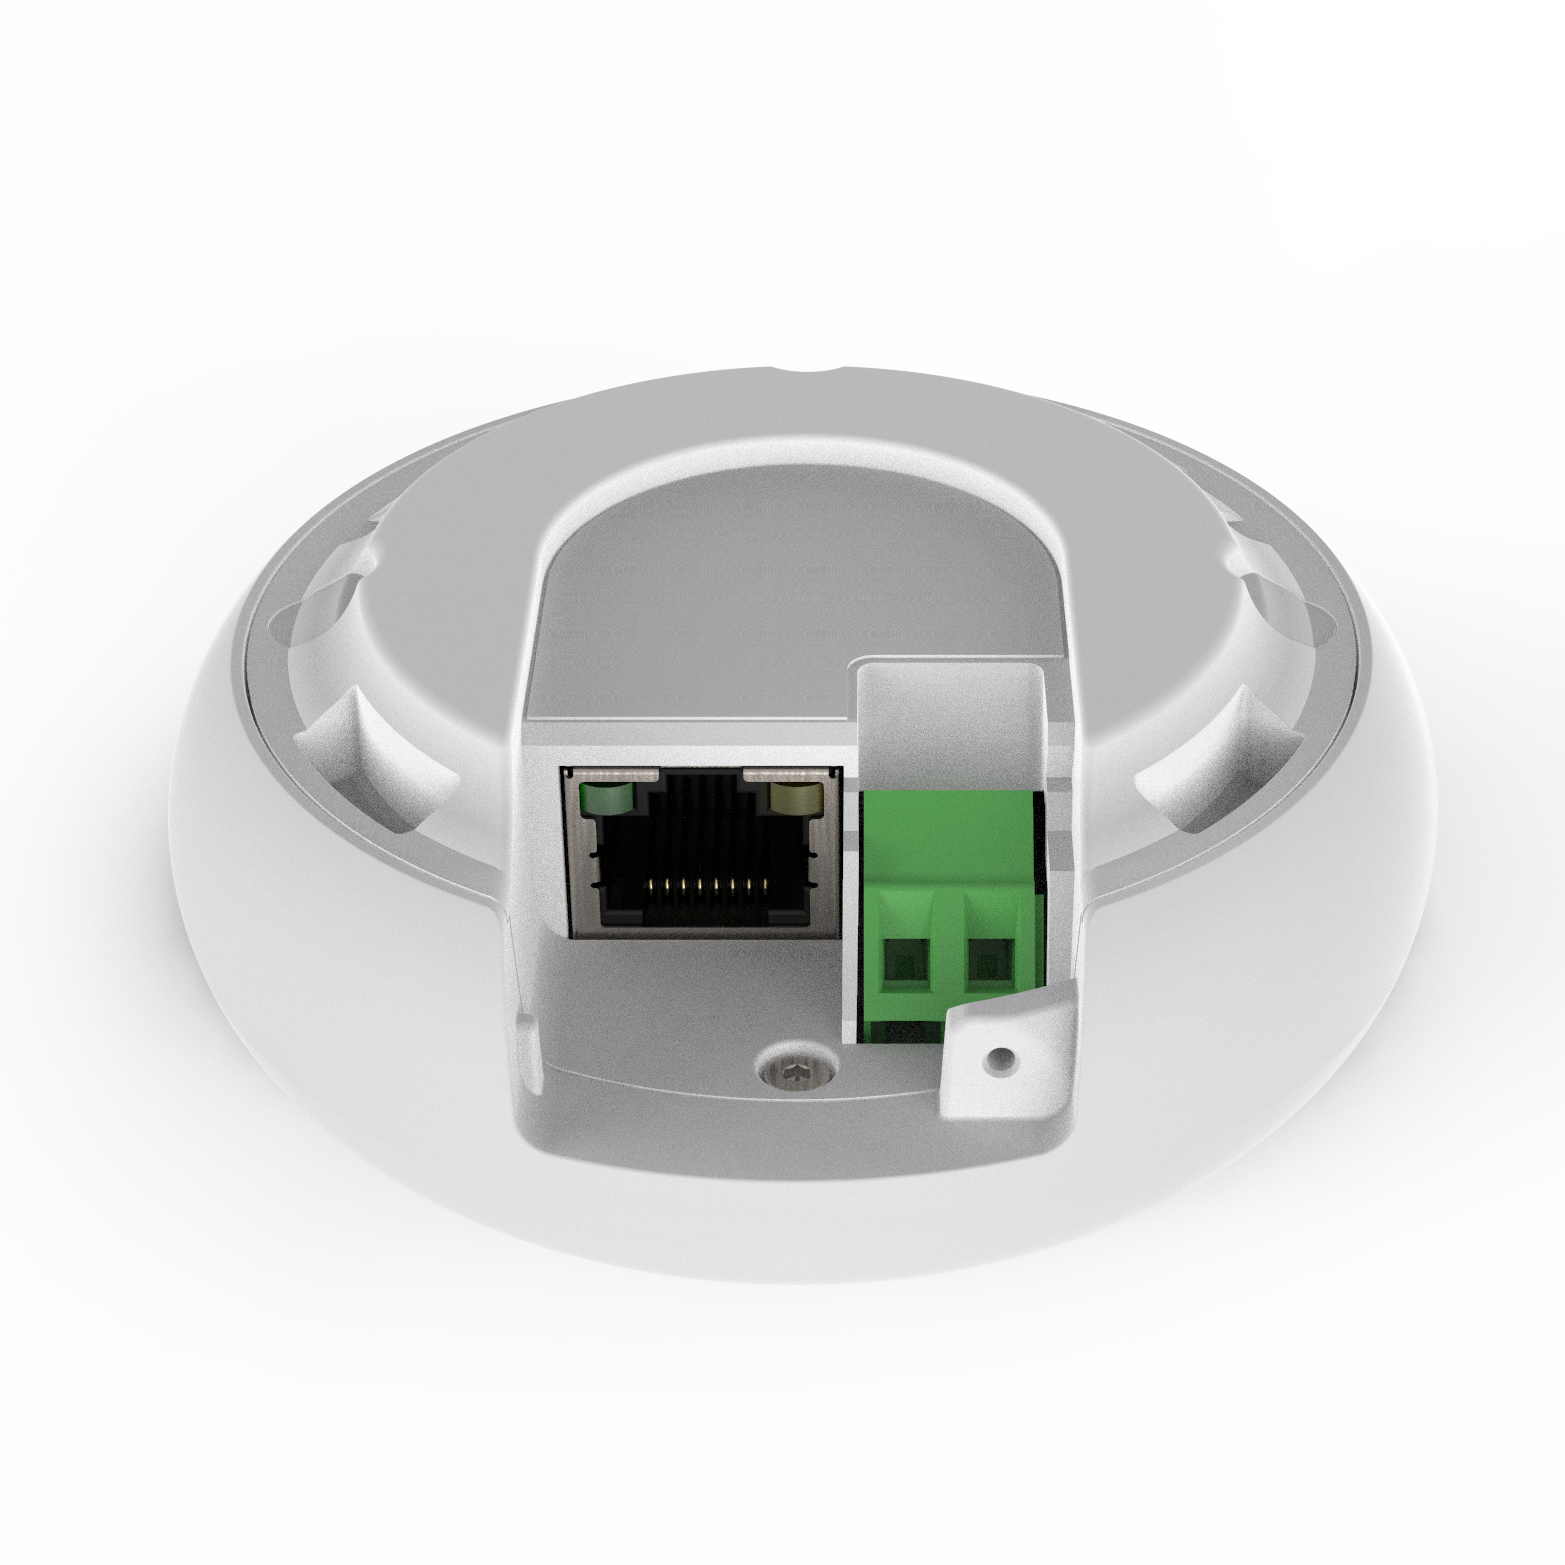 Surveillance Archives Cisco Meraki Blog Home Product Highlights Poe Network Switch For Ip Camera Review After Downloading This Configuration Through The Lan Cameras Can Be Powered On With New Accessory Within Range Of